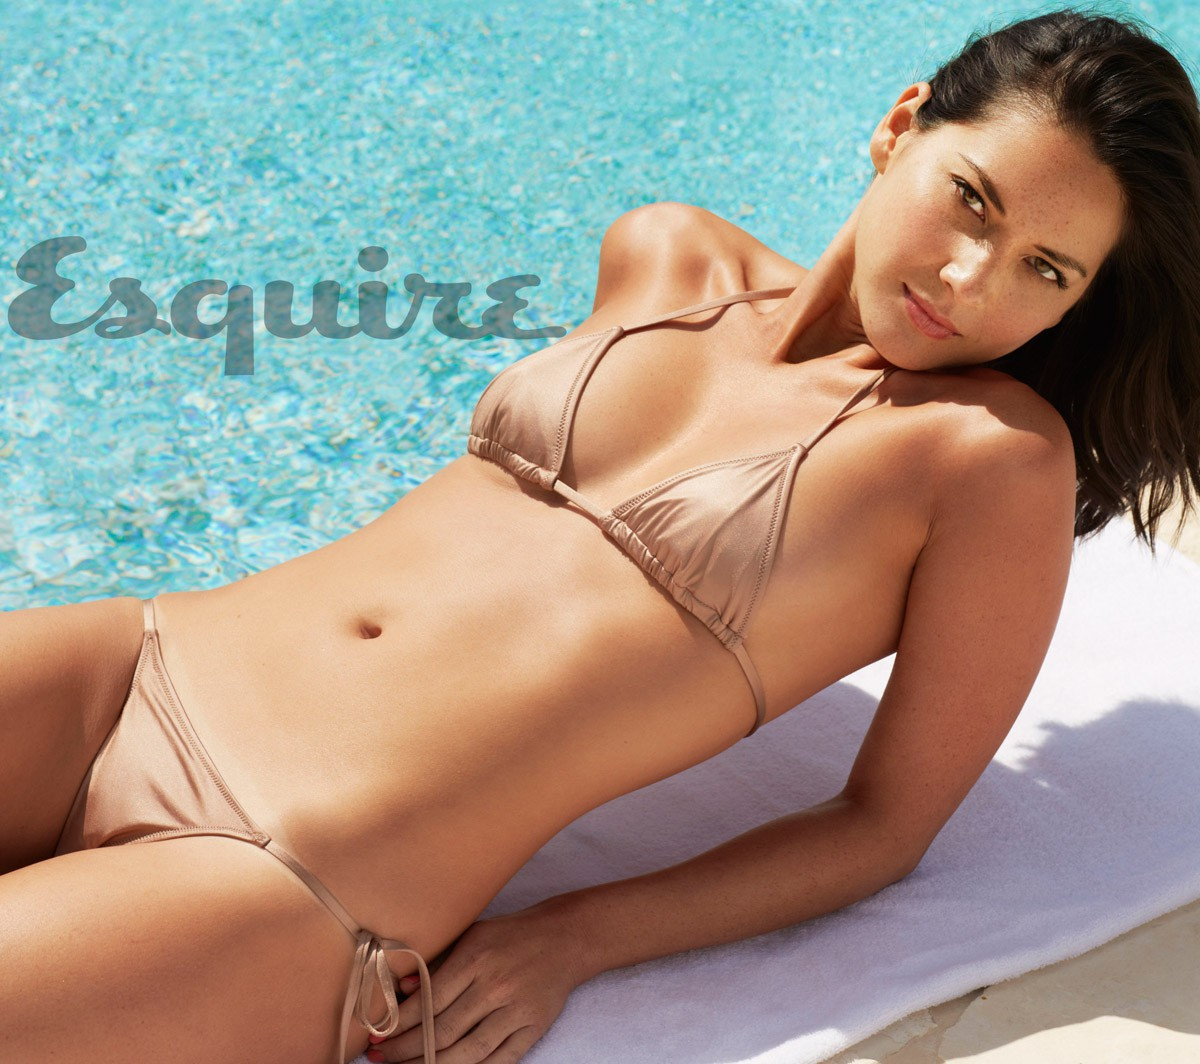 Olivia Munn Sexy Bikini Pictures For Esquire Magazine June/july 2013